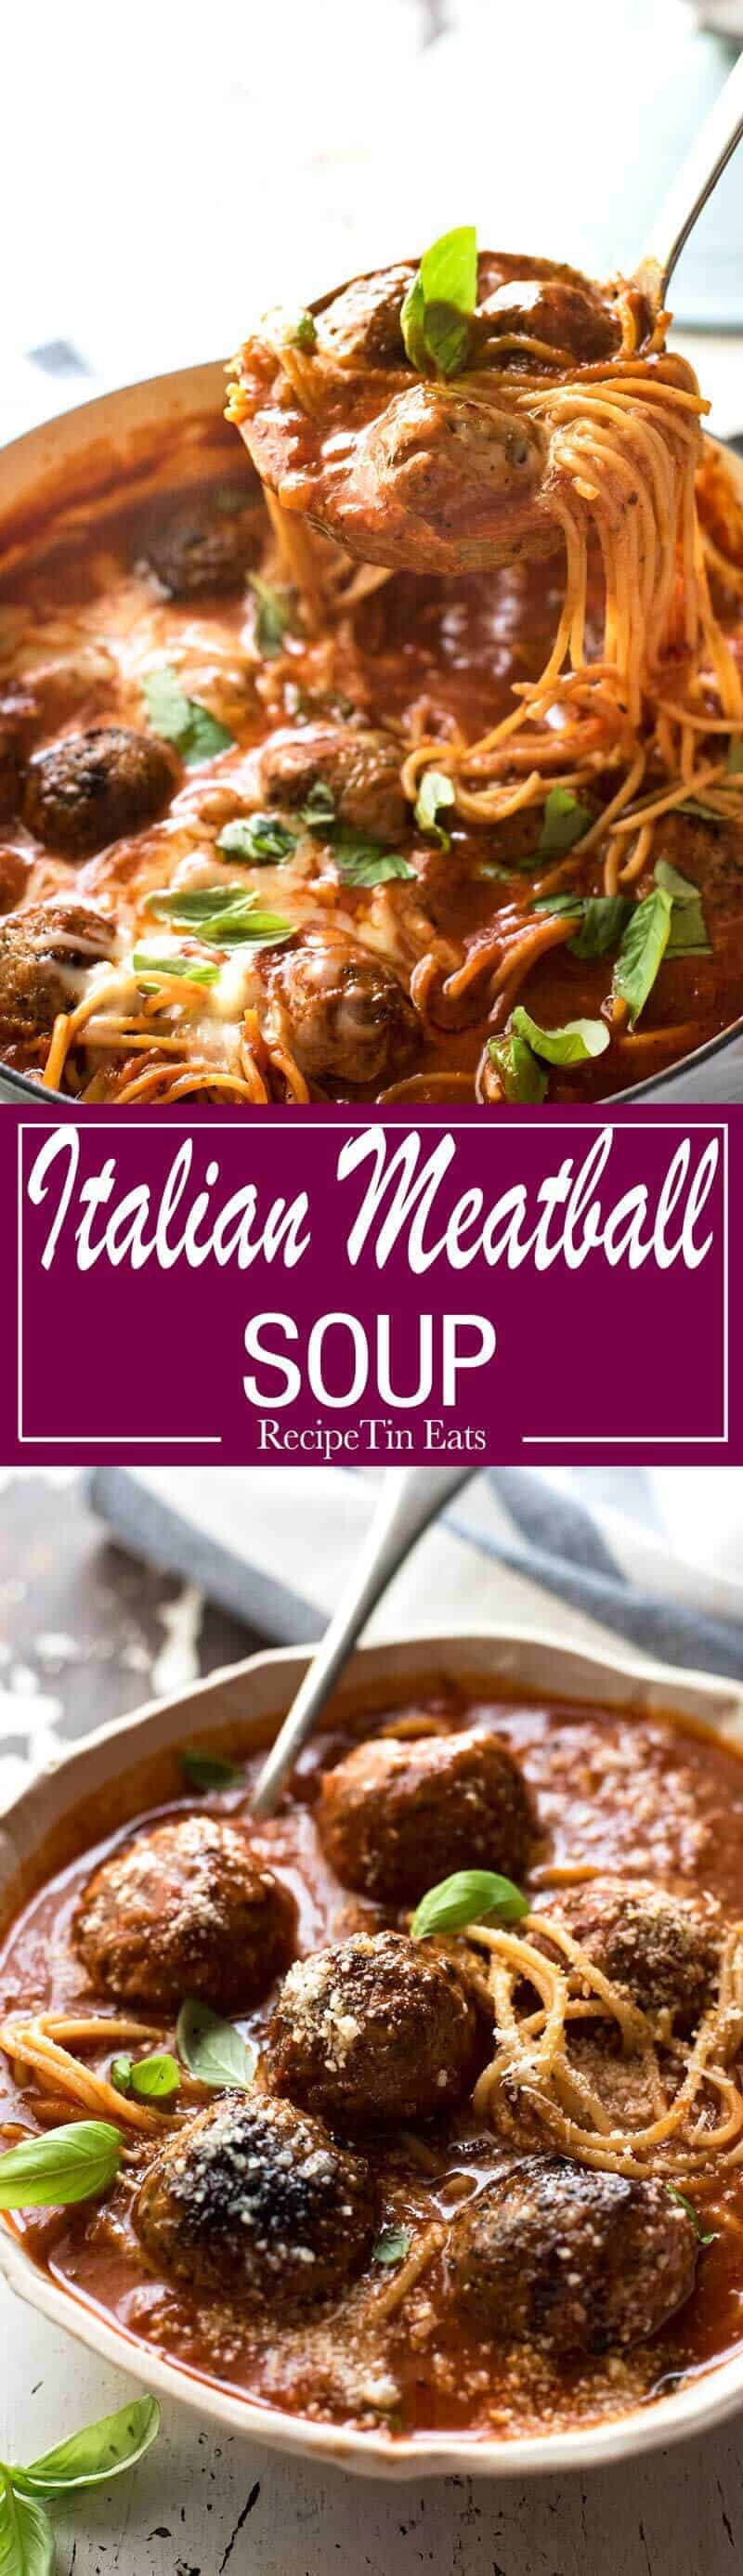 Italian Meatball Soup - Extra juicy, soft & tasty meatballs in a tomato spaghetti soup, all made in one pot! www.recipetineats.com